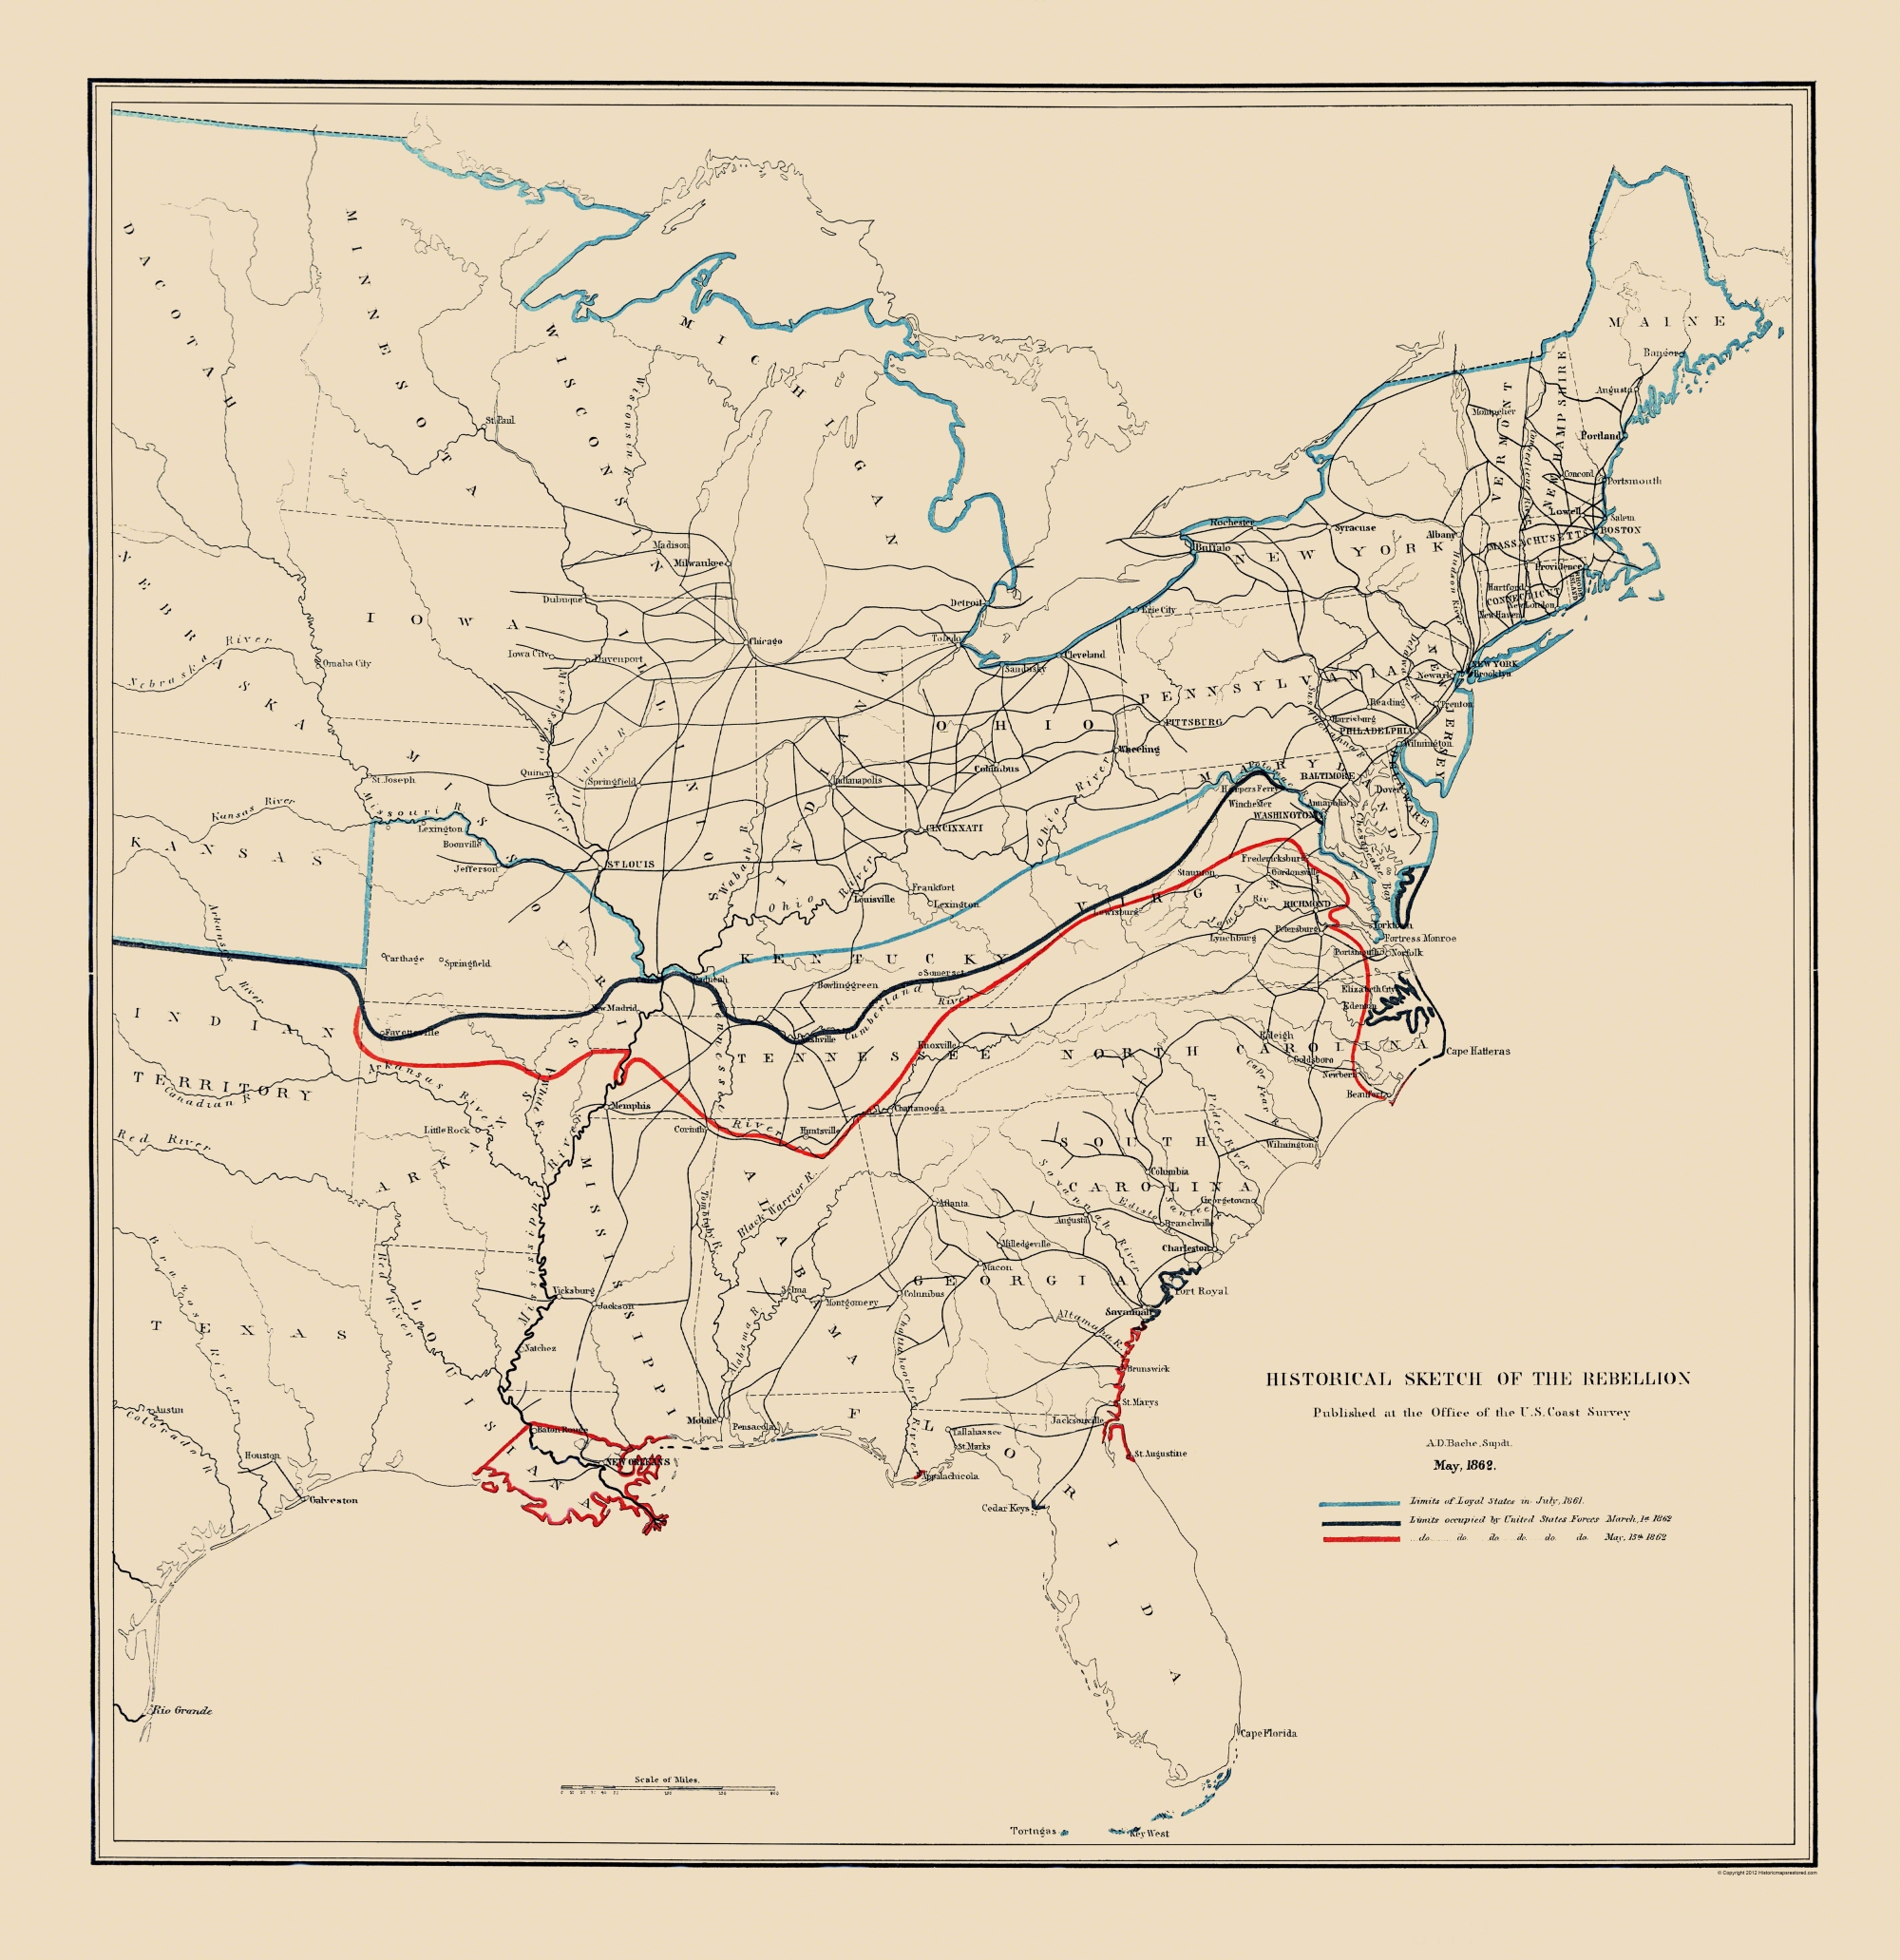 Civil War Map Historical Sketch Rebellion May - Cumberland river on us map